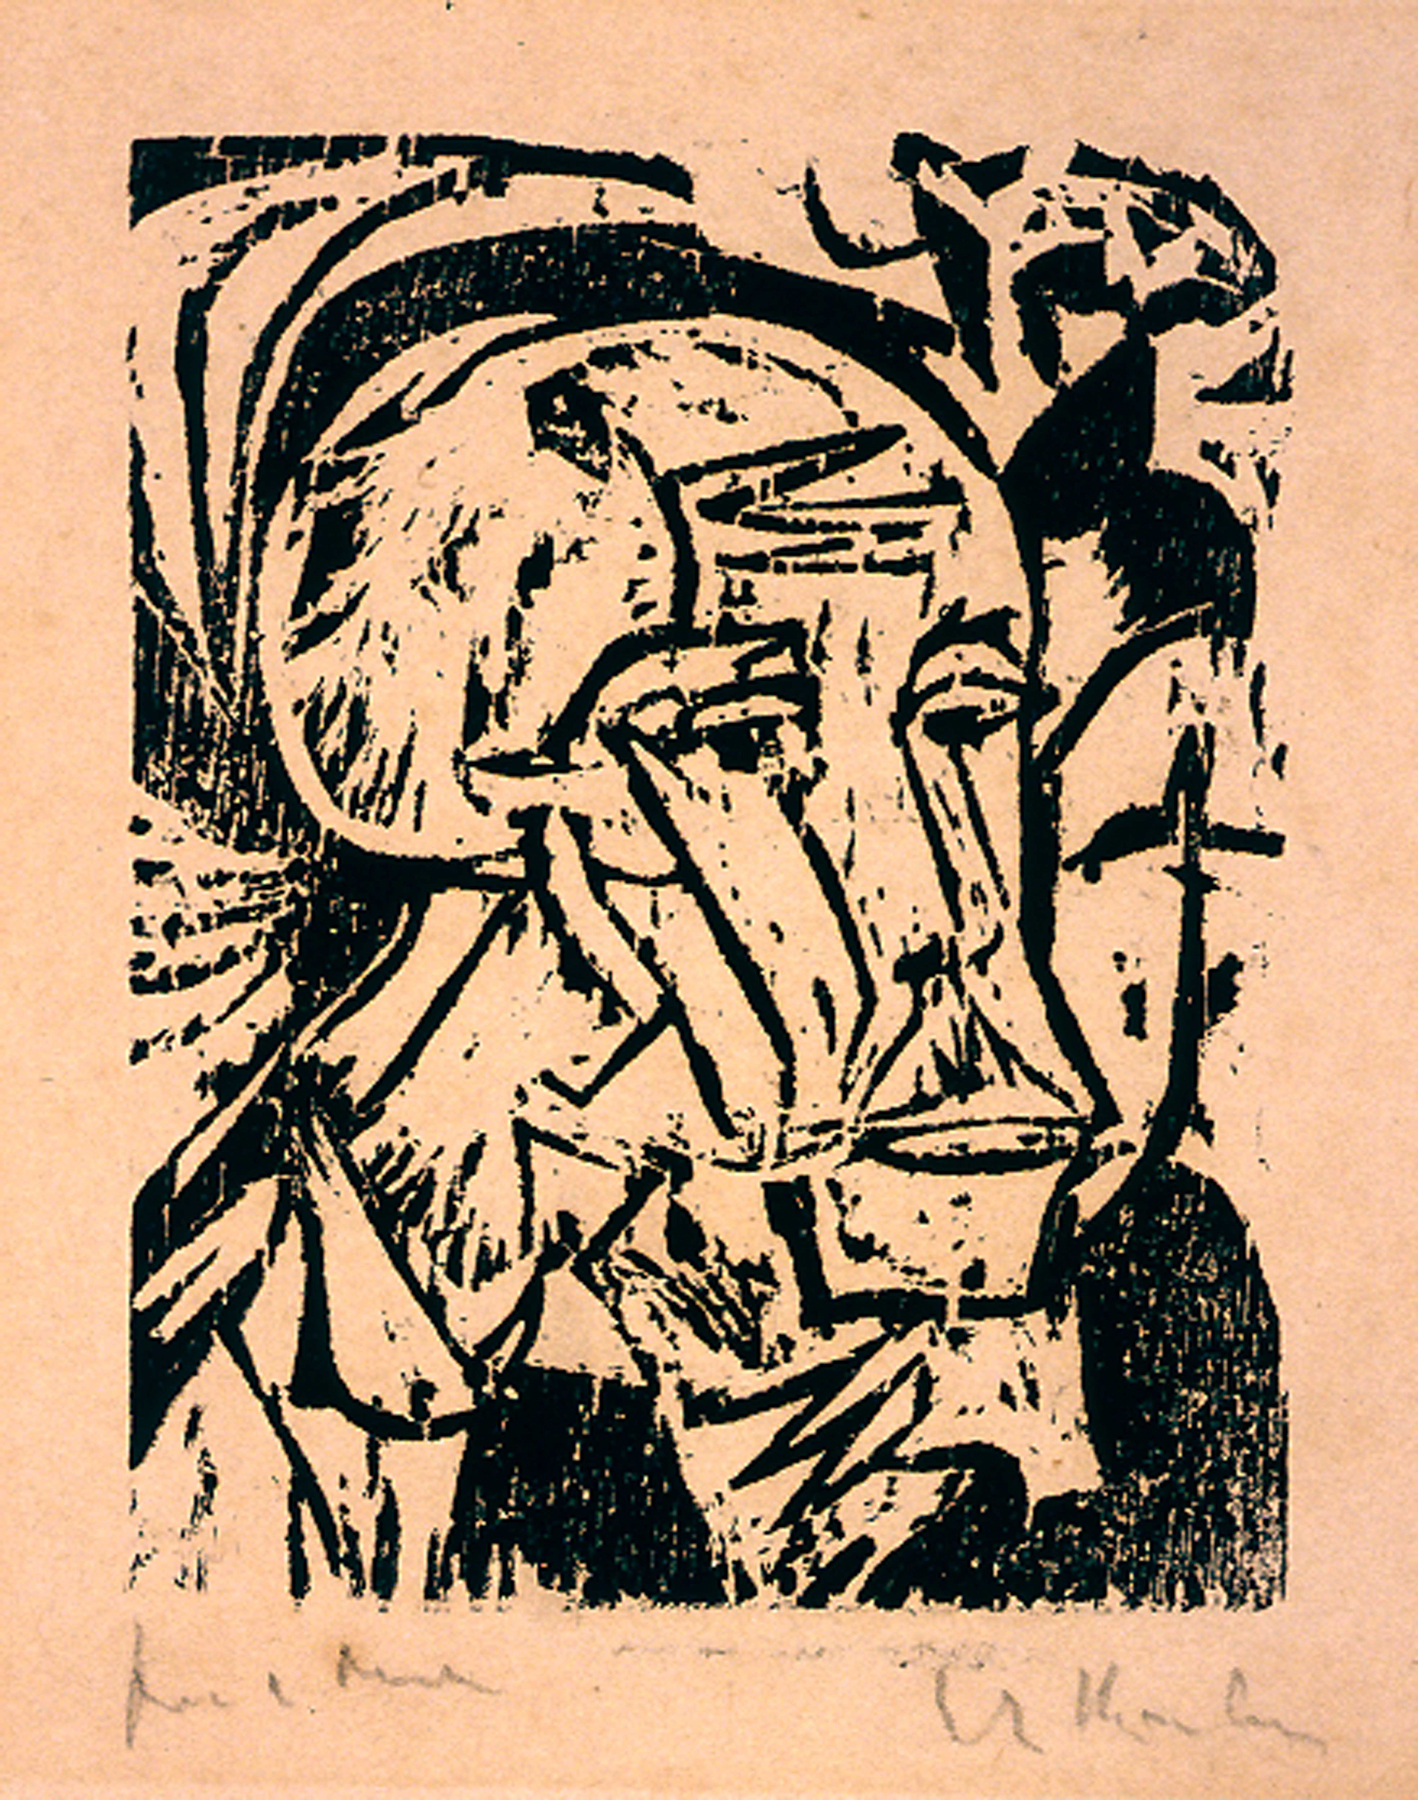 a description of german expressionism which means a number of associated modernist movement Expressionism was a modernist movement there were a number of groups of expressionist painters among the poets associated with german expressionism.